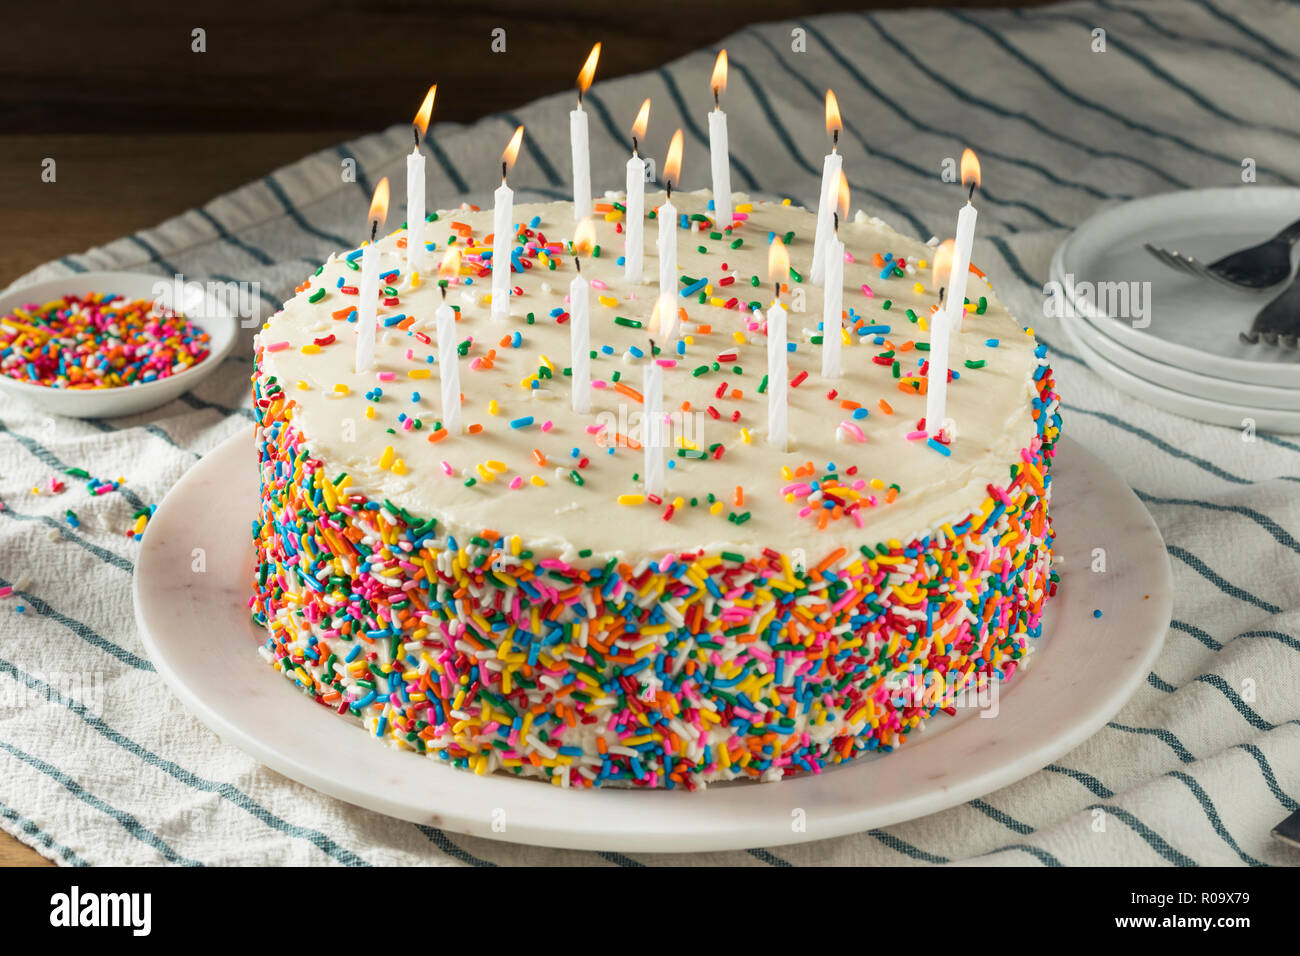 Admirable Homemade Sweet Birthday Cake With Candles Ready To Serve Stock Funny Birthday Cards Online Elaedamsfinfo